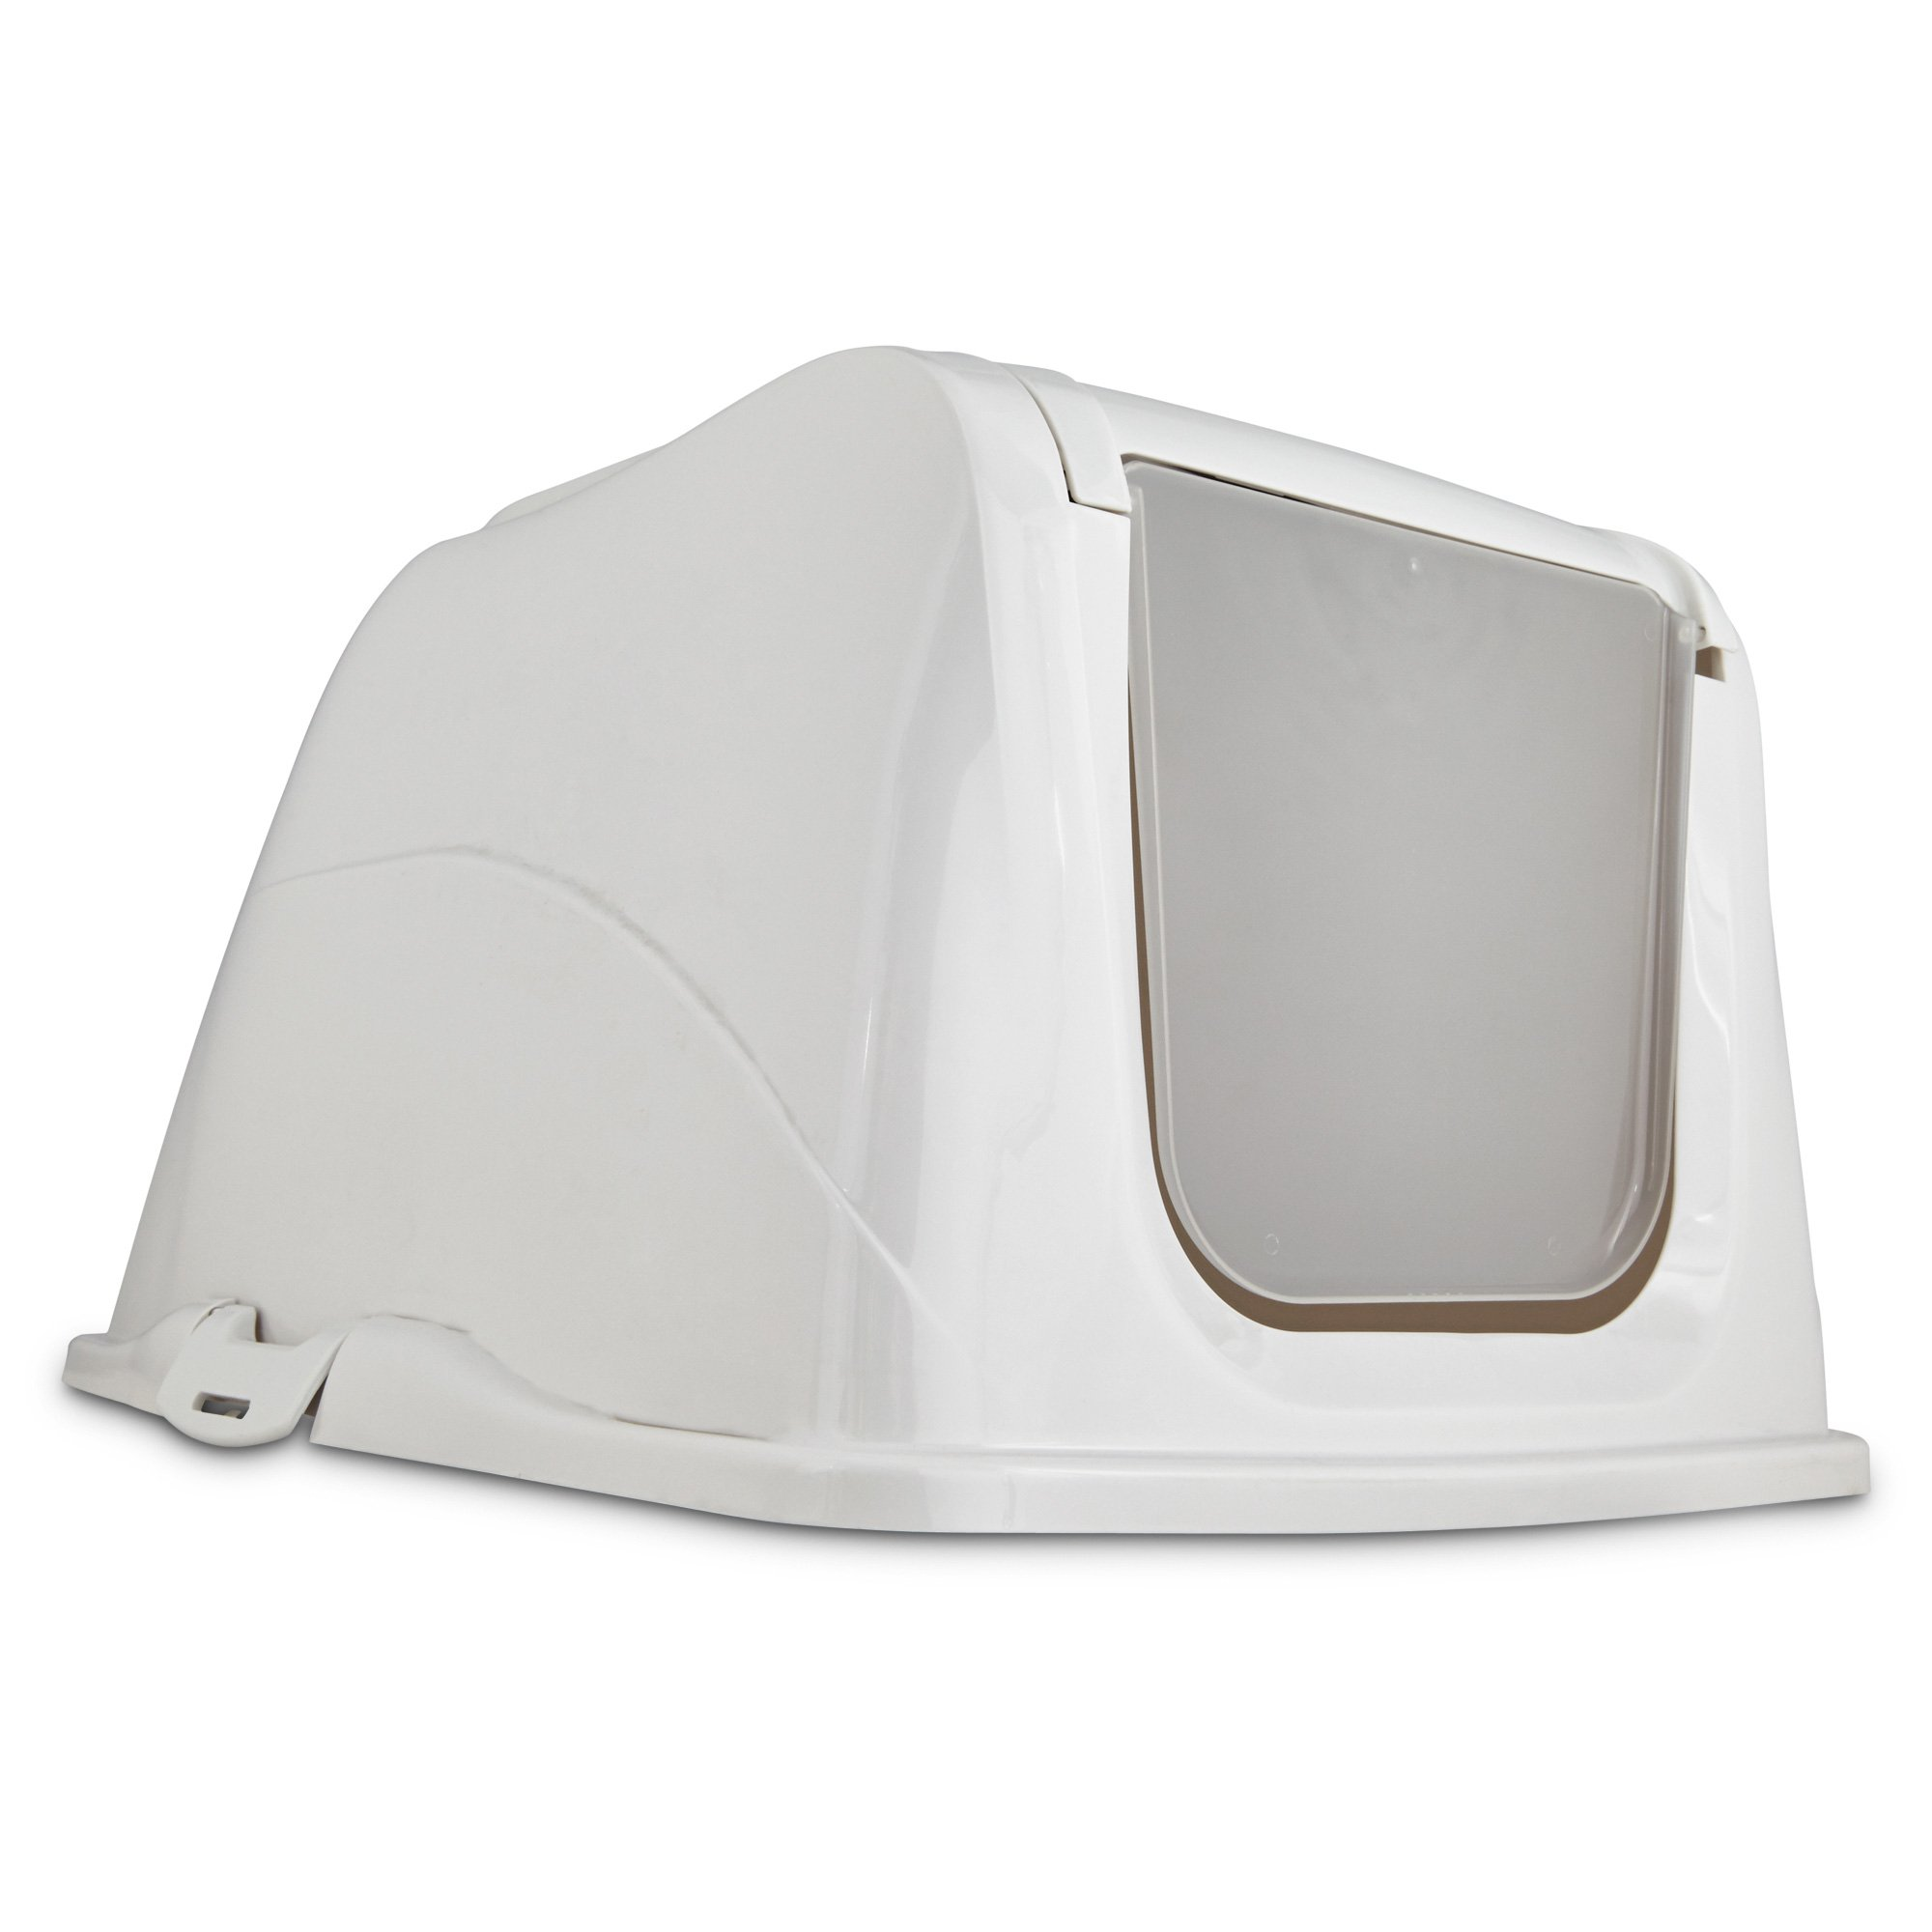 More options available  sc 1 st  Petco & Cat Litter Box Covers: Hoods u0026 Rims to Contain Litter Scatter | Petco